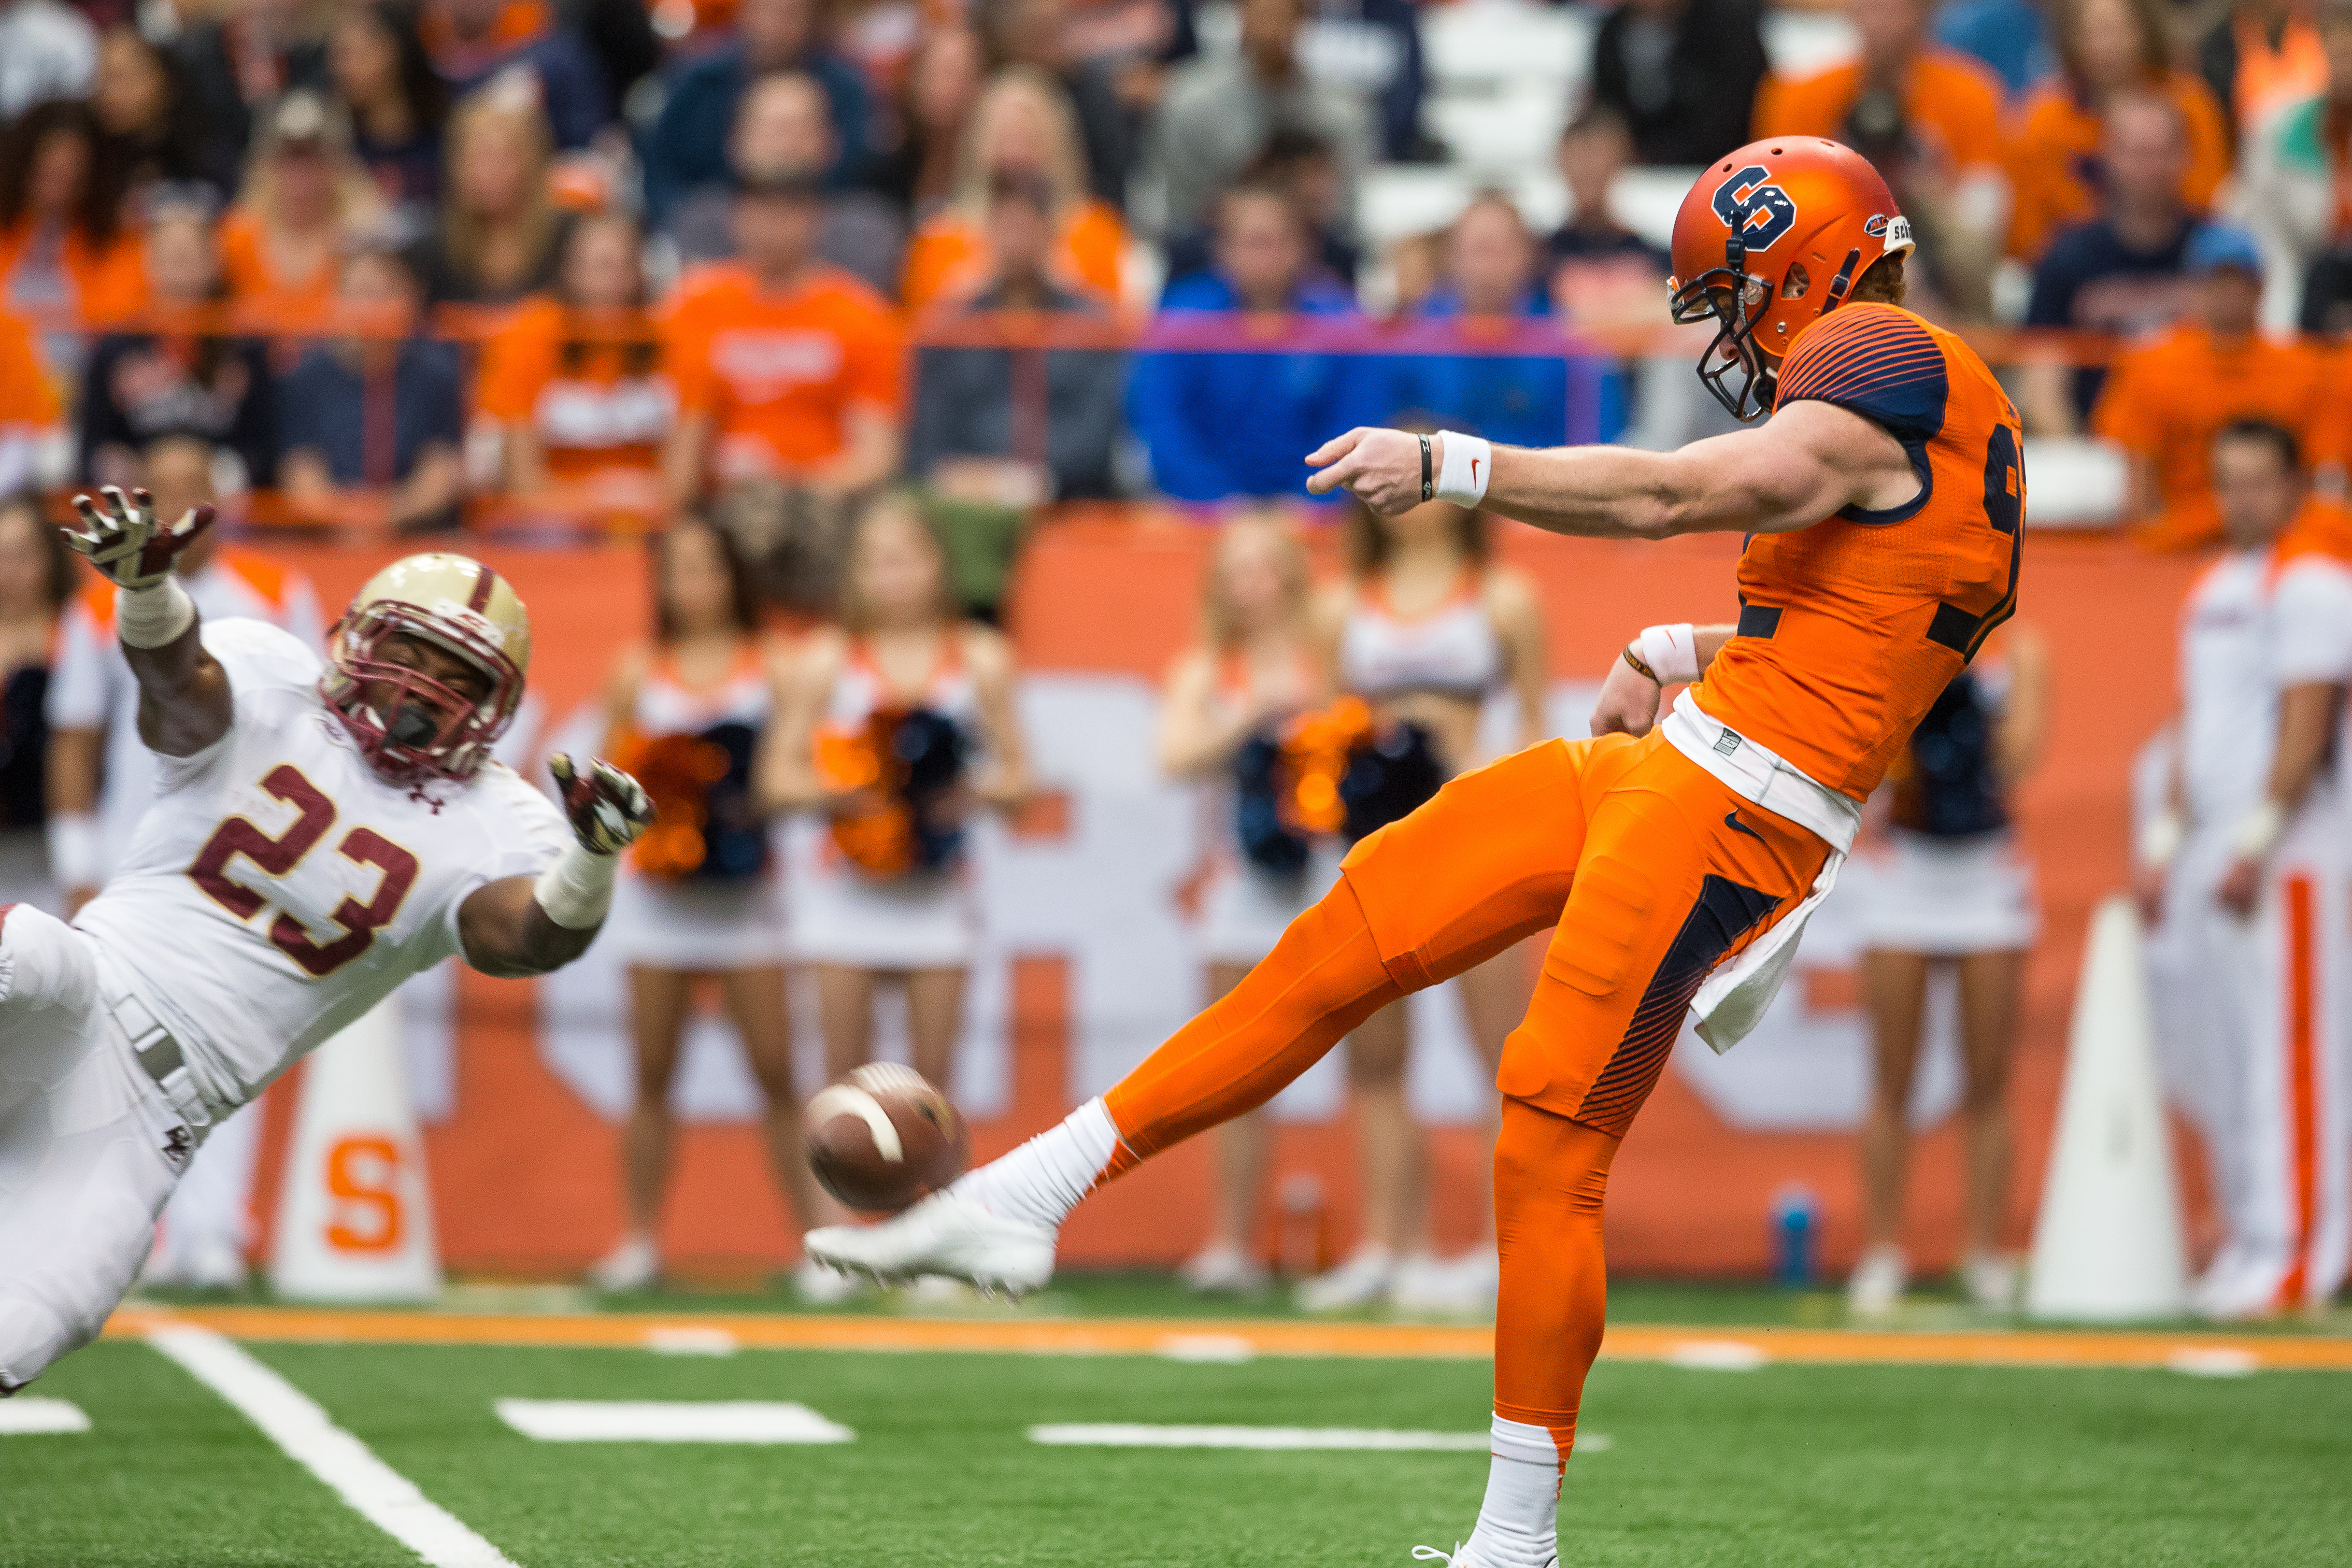 Myles Willis #23 of the Boston College Eagles narrowly misses blocking a punt by Riley Dixon #92 of the Syracuse Orange during the first half on November 28, 2015 at The Carrier Dome in Syracuse, New York. (Photo by Brett Carlsen/Getty Images)